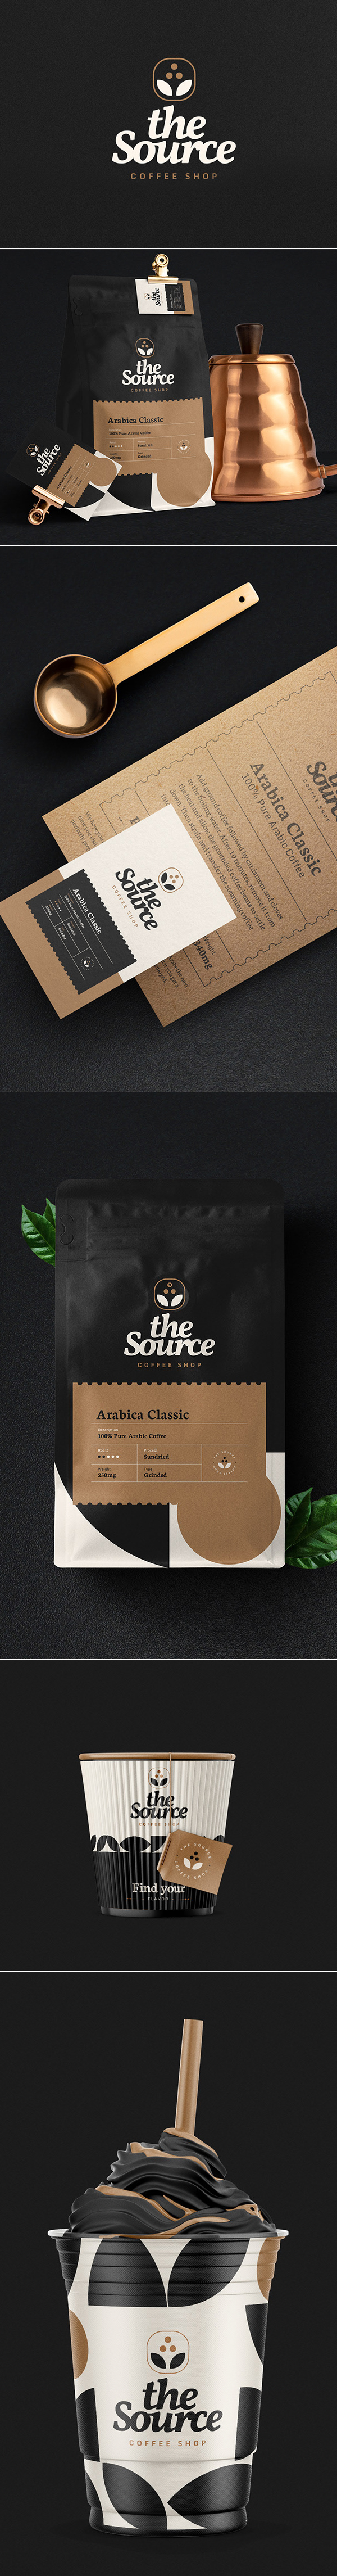 The Source Brand Identity & Packaging by David Silva